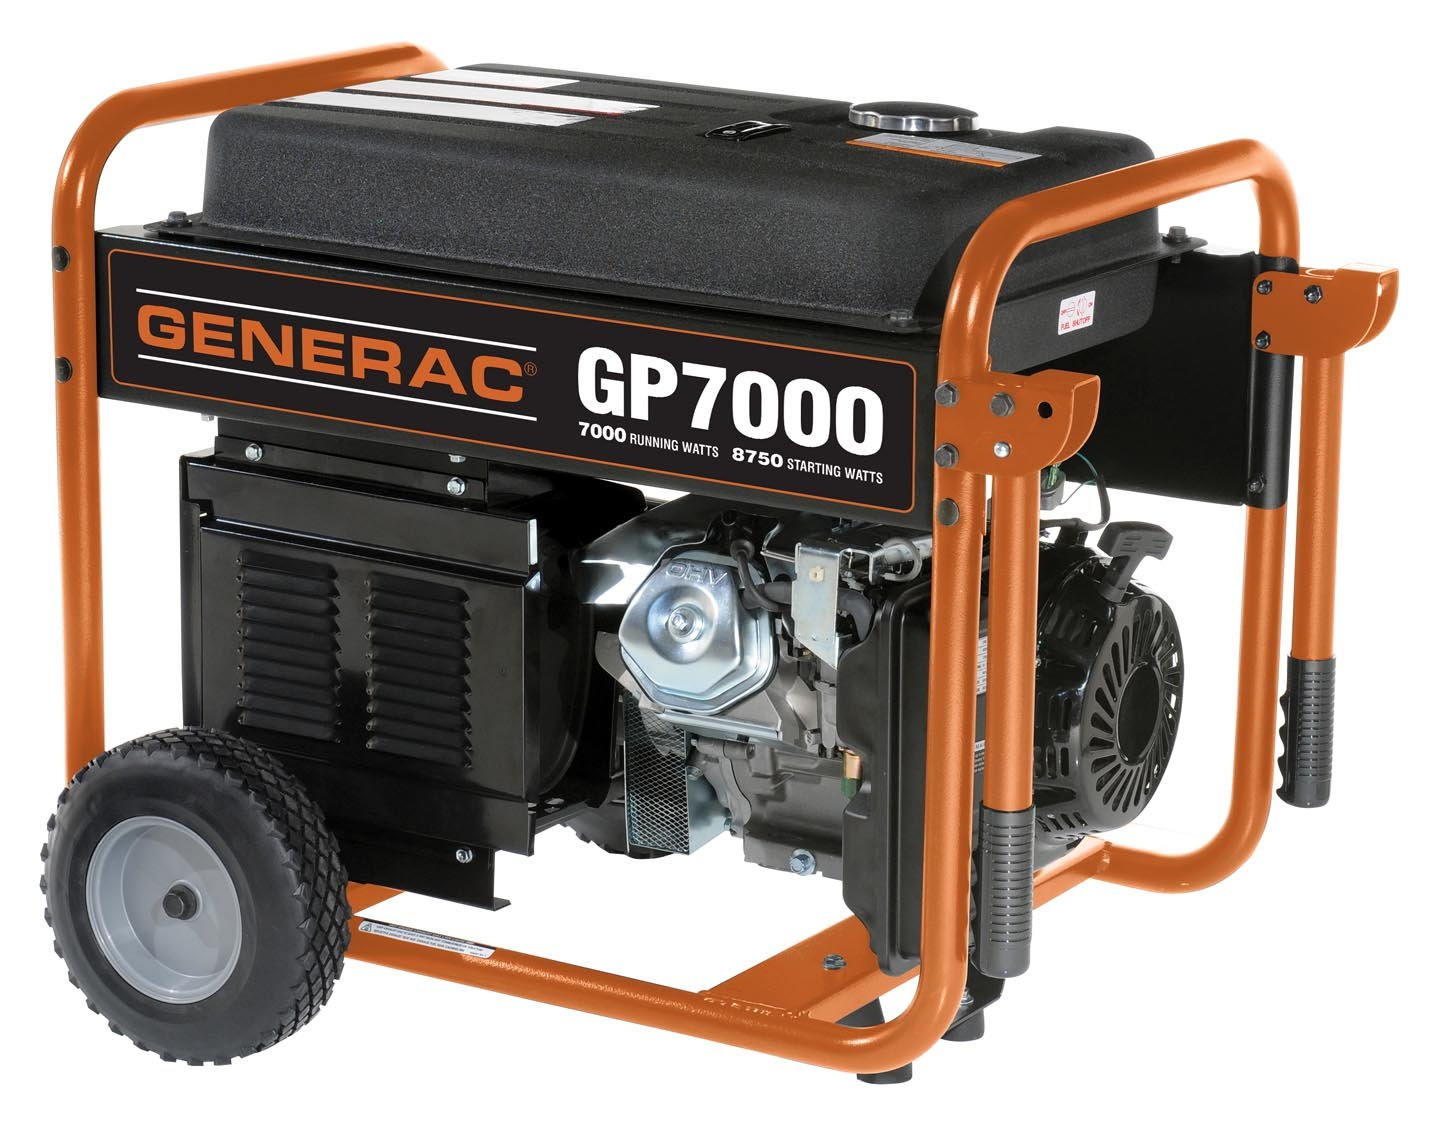 Amazon.com: Generac 5625 GP7000 7,000 Watt 410cc OHV Portable Gas Powered  Generator (Discontinued by Manufacturer): Garden & Outdoor